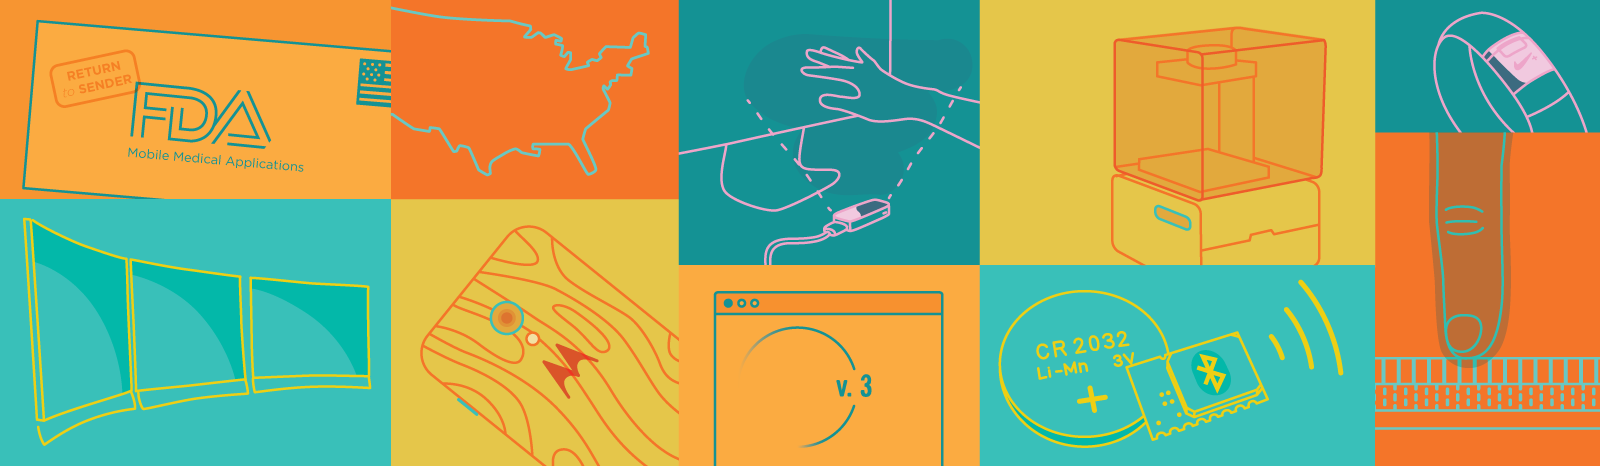 10 Biggest Innovations of 2013 to Influence Product Design